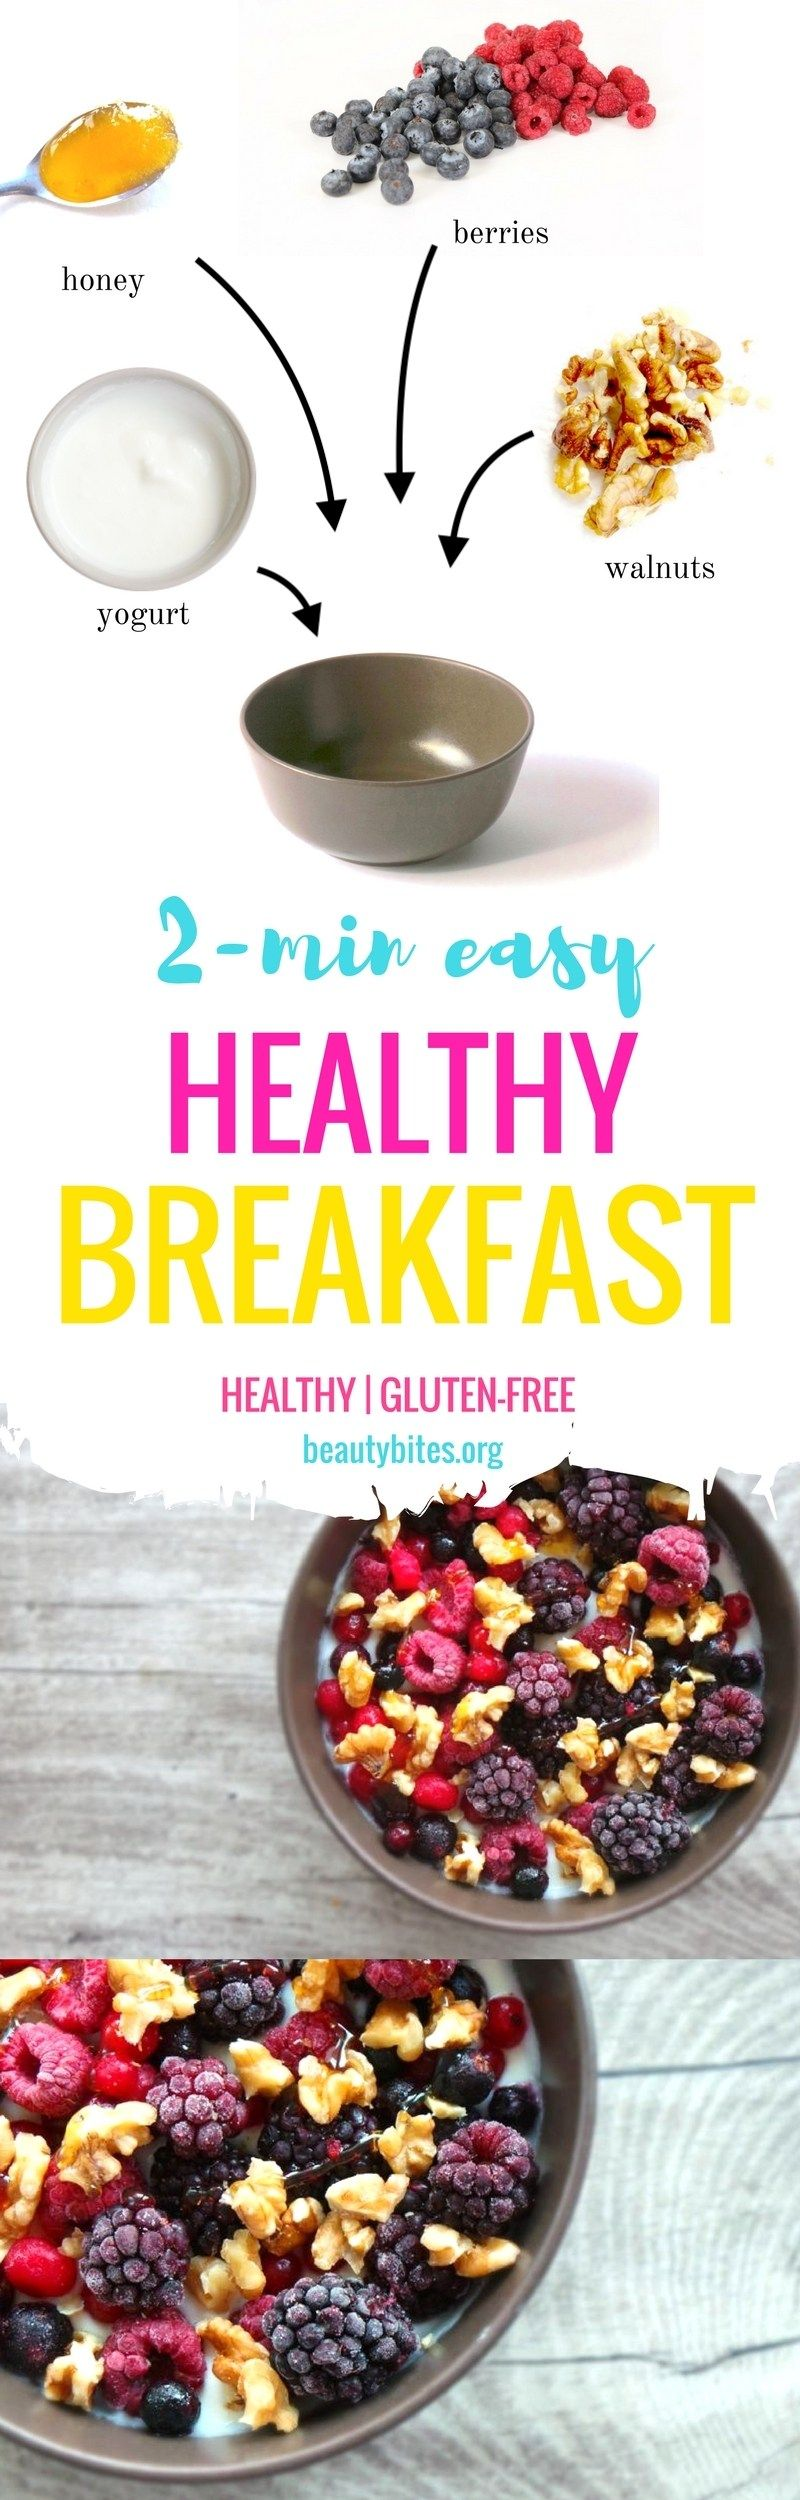 An Extremely Easy Healthy Breakfast Recipe That Is Grain Free And Delicious Th Healthy Breakfast Recipes Easy Easy Healthy Breakfast Healthy Breakfast Recipes